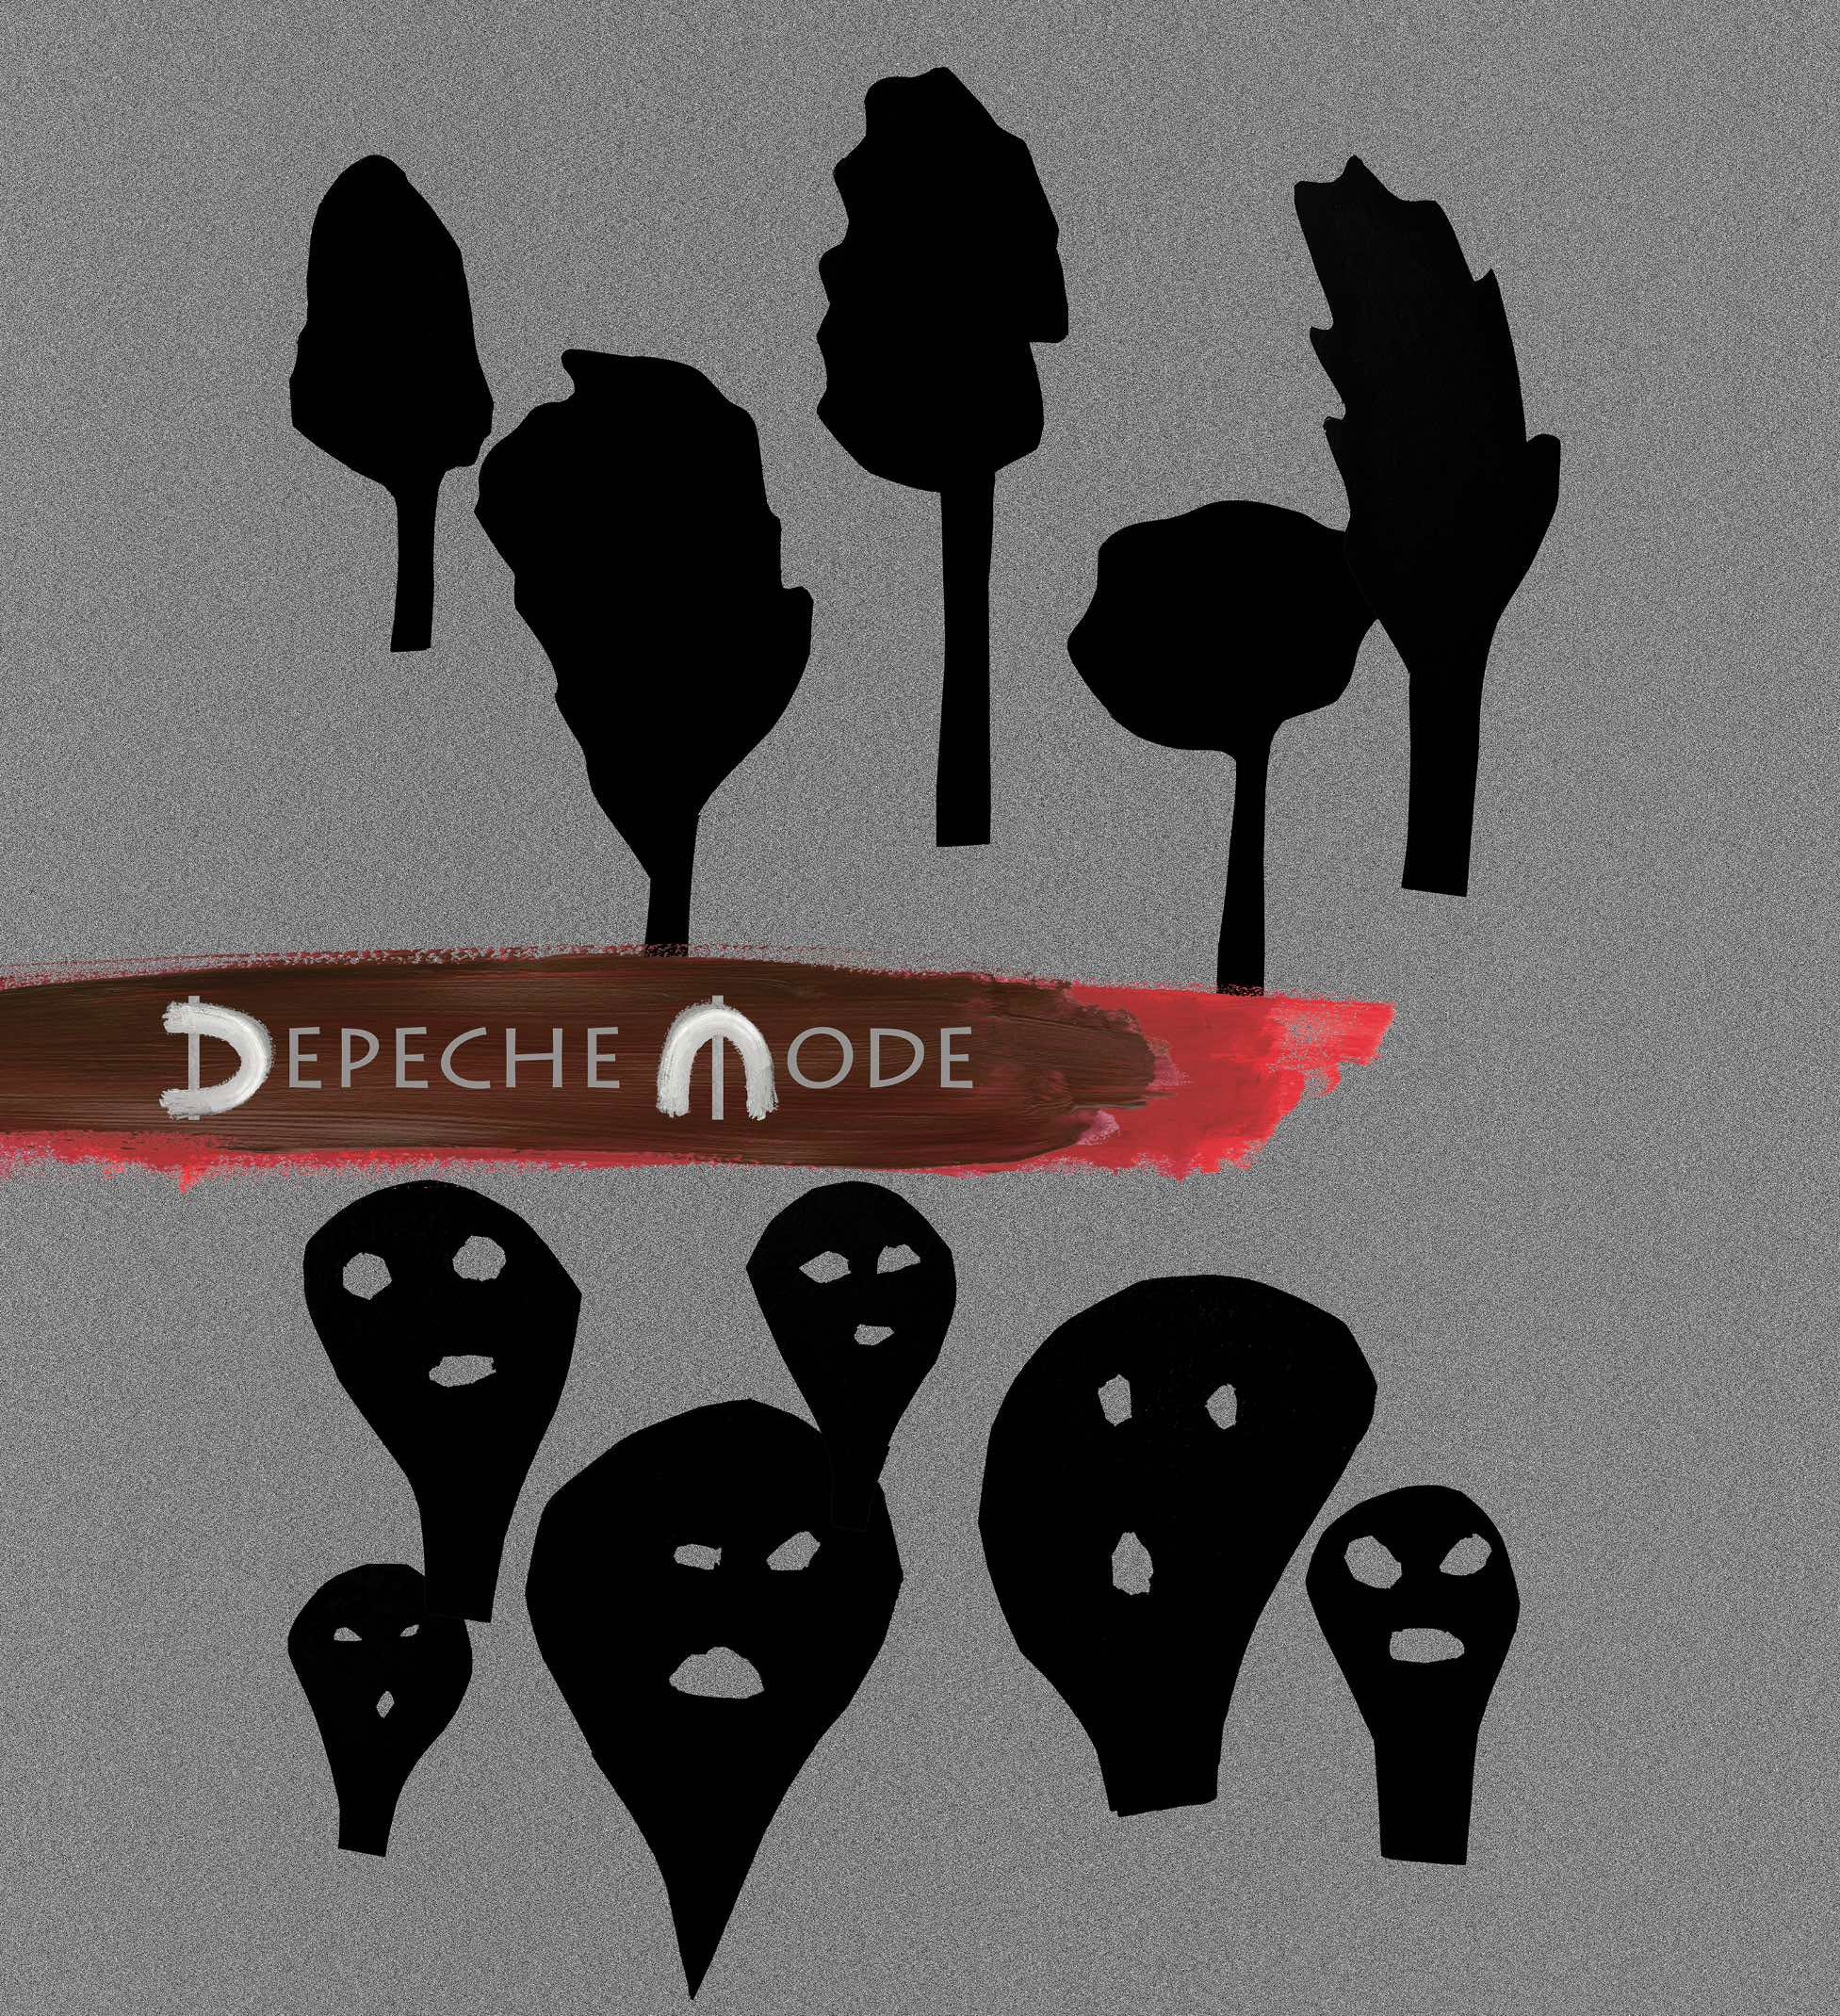 DEPECHE MODE announce the release of the new documentary and concert film, SPIRITS in the Forest 2